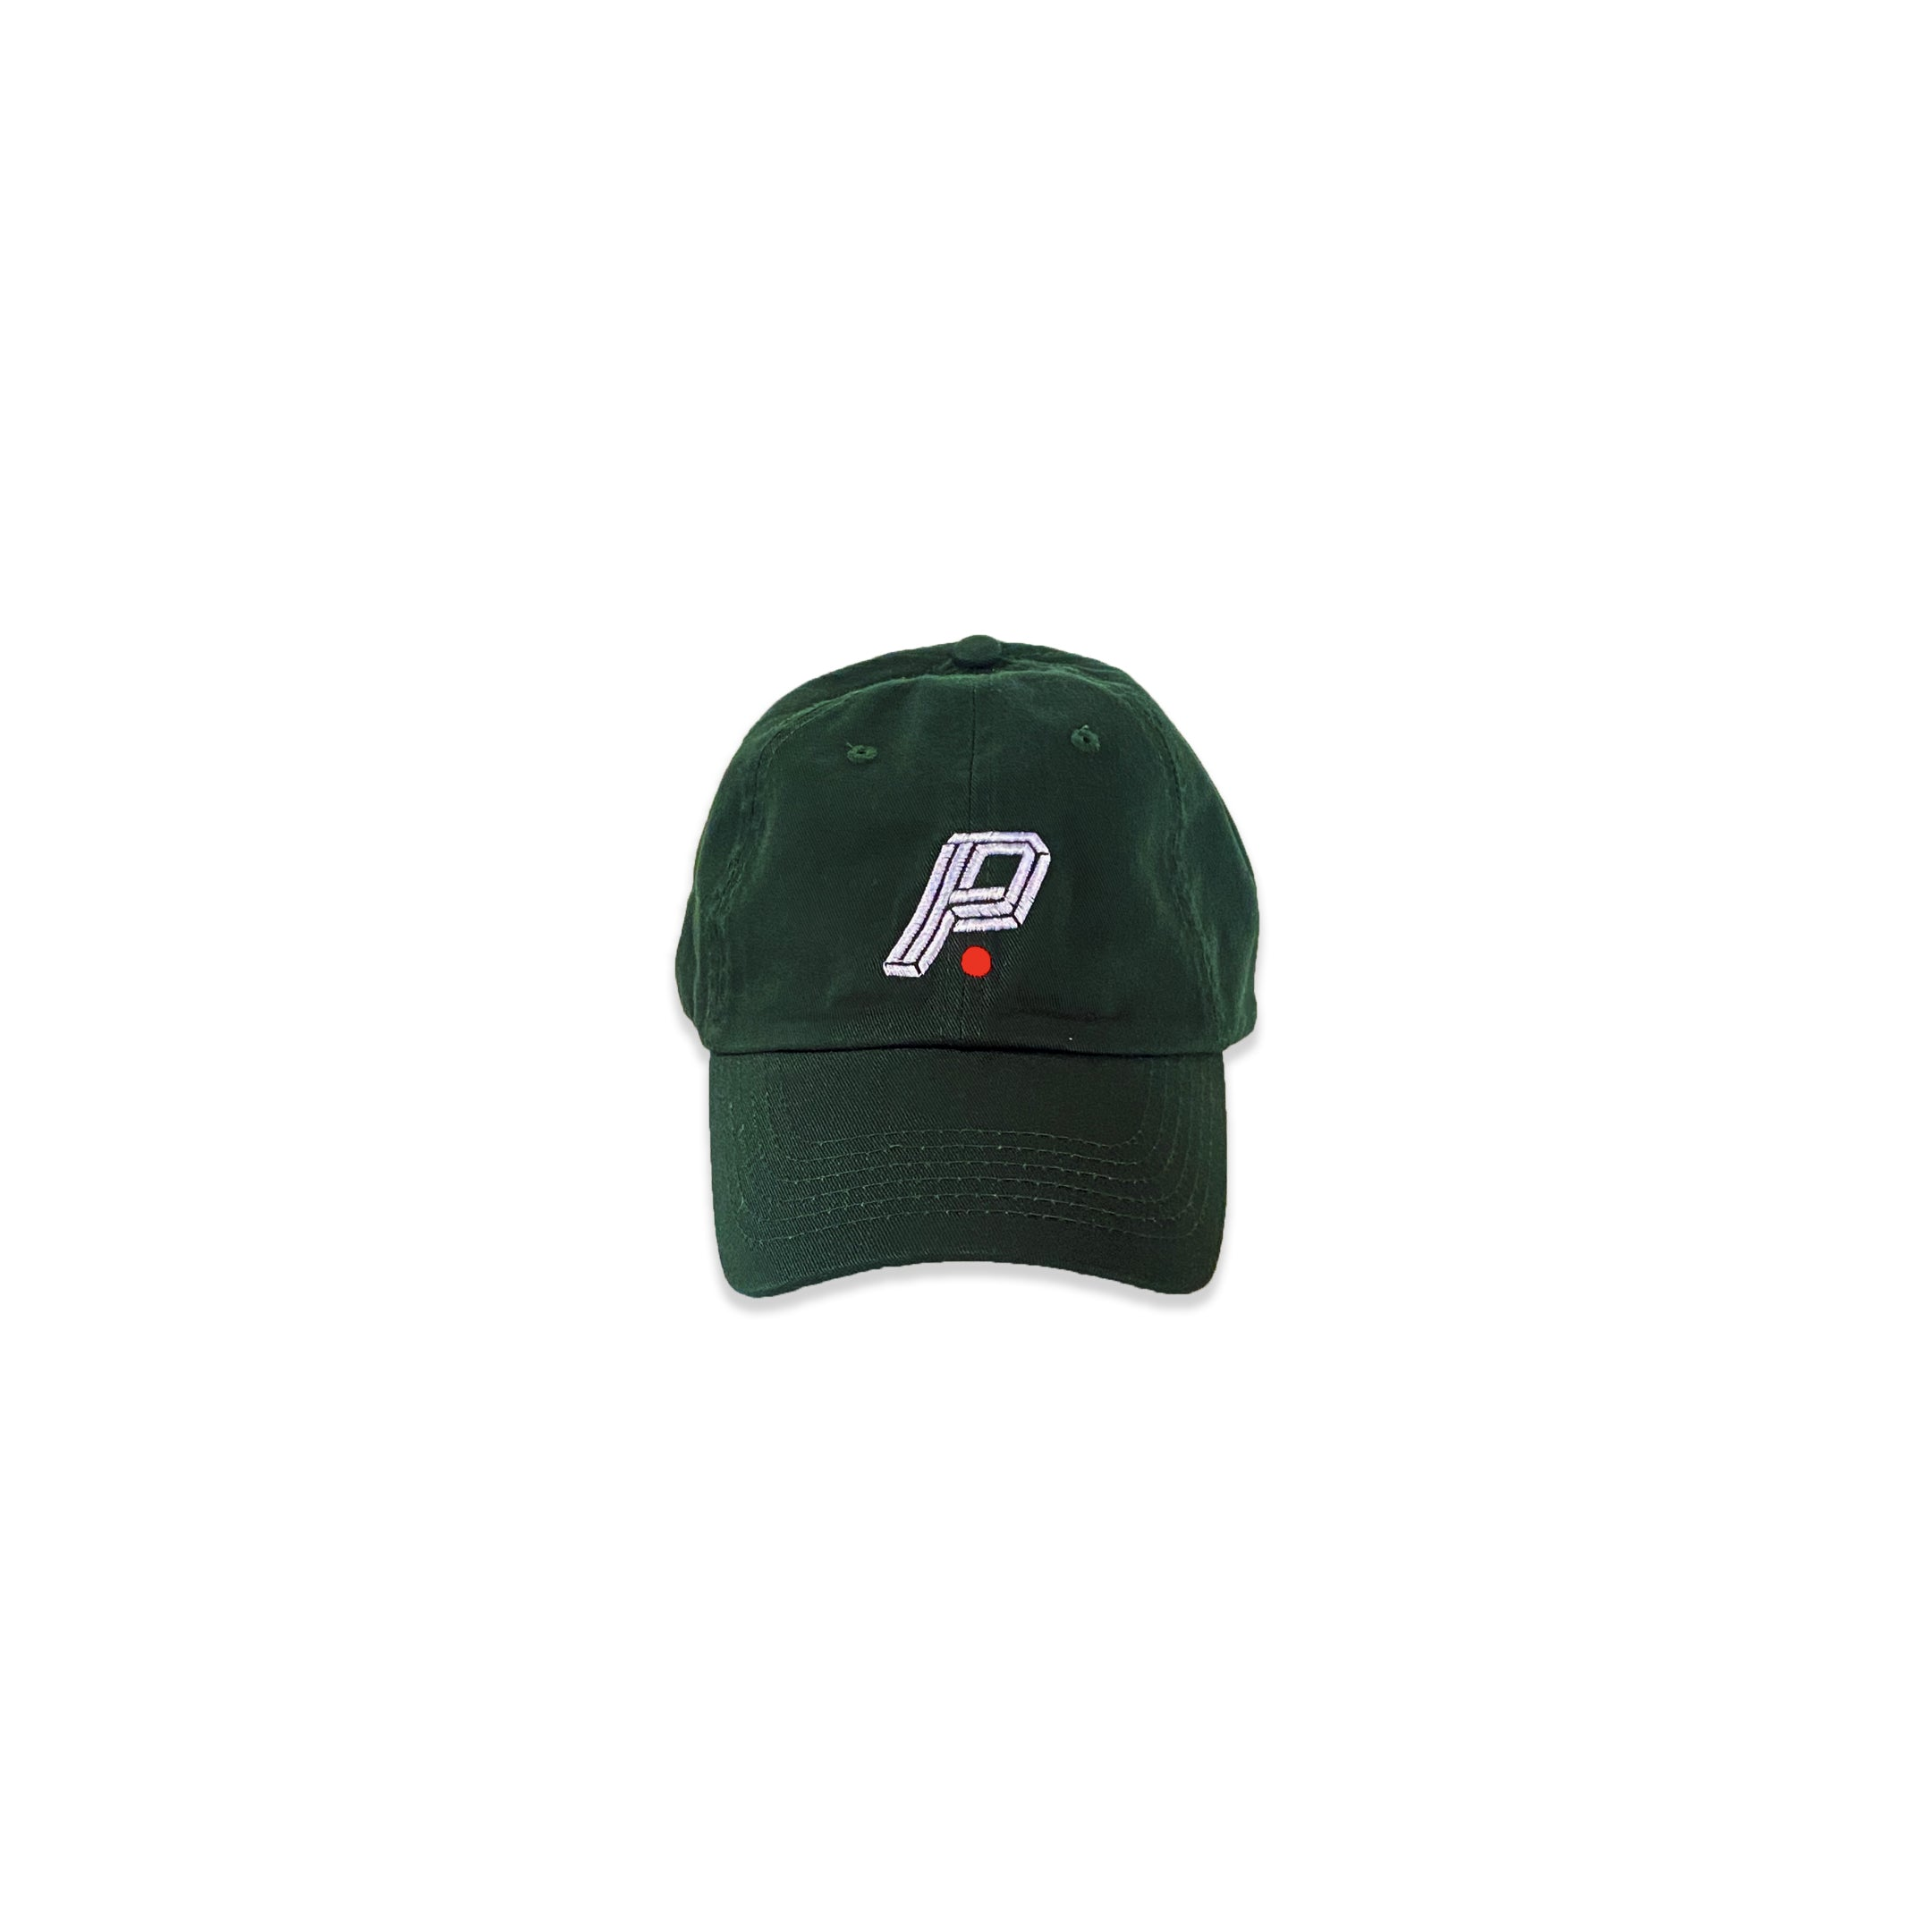 SPORTS Polo Cap (Forest Green)